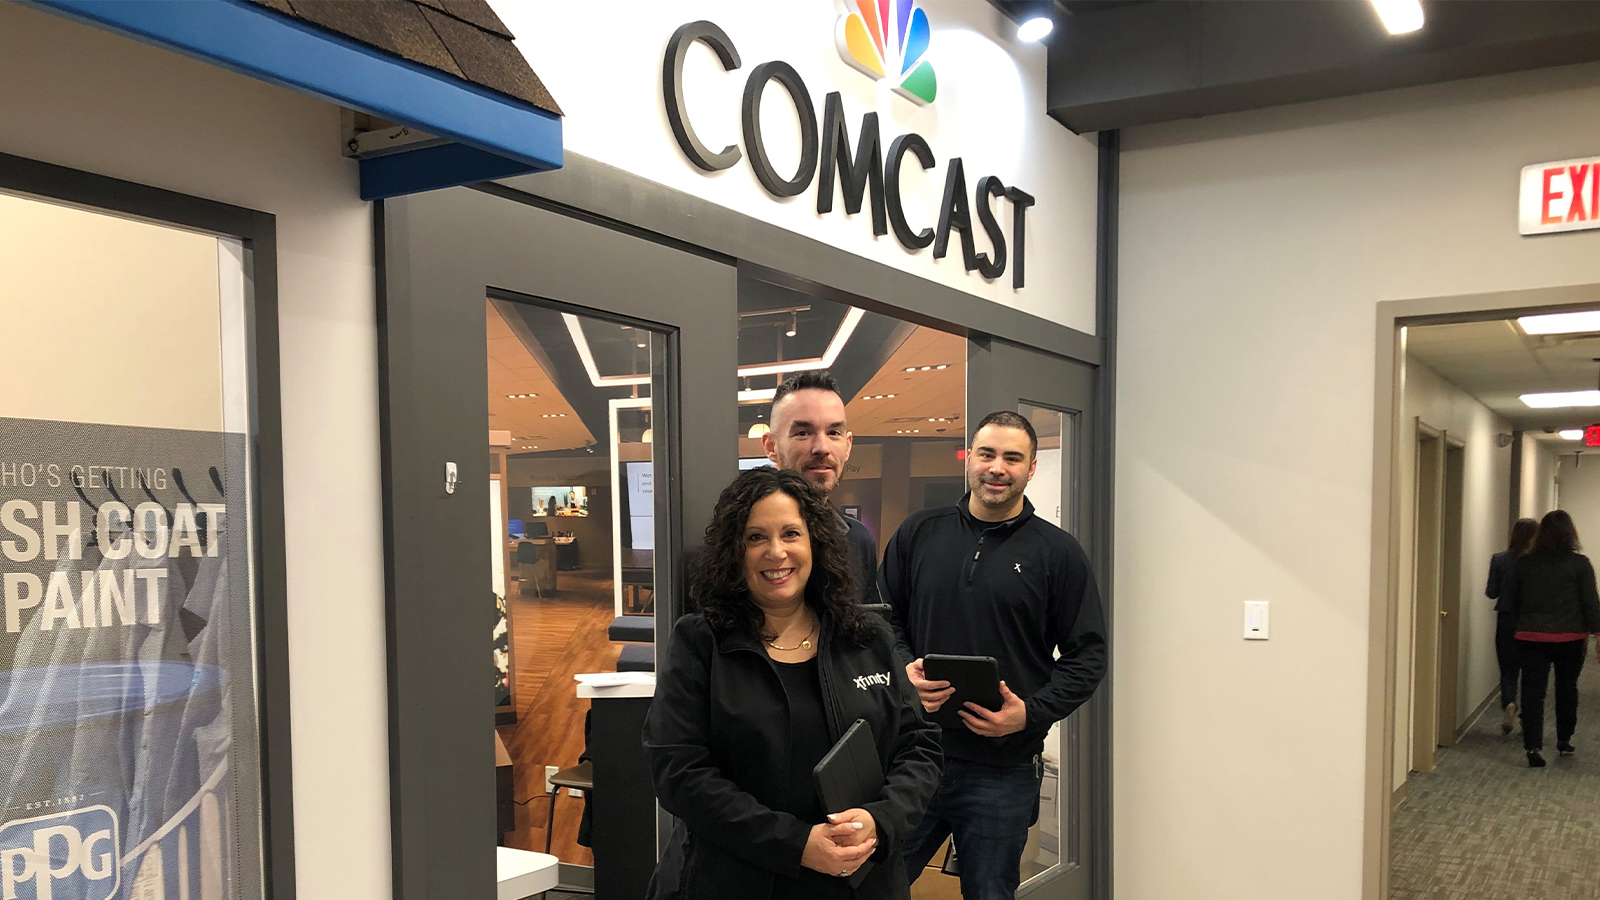 Comcast employees in front of store in BizTown